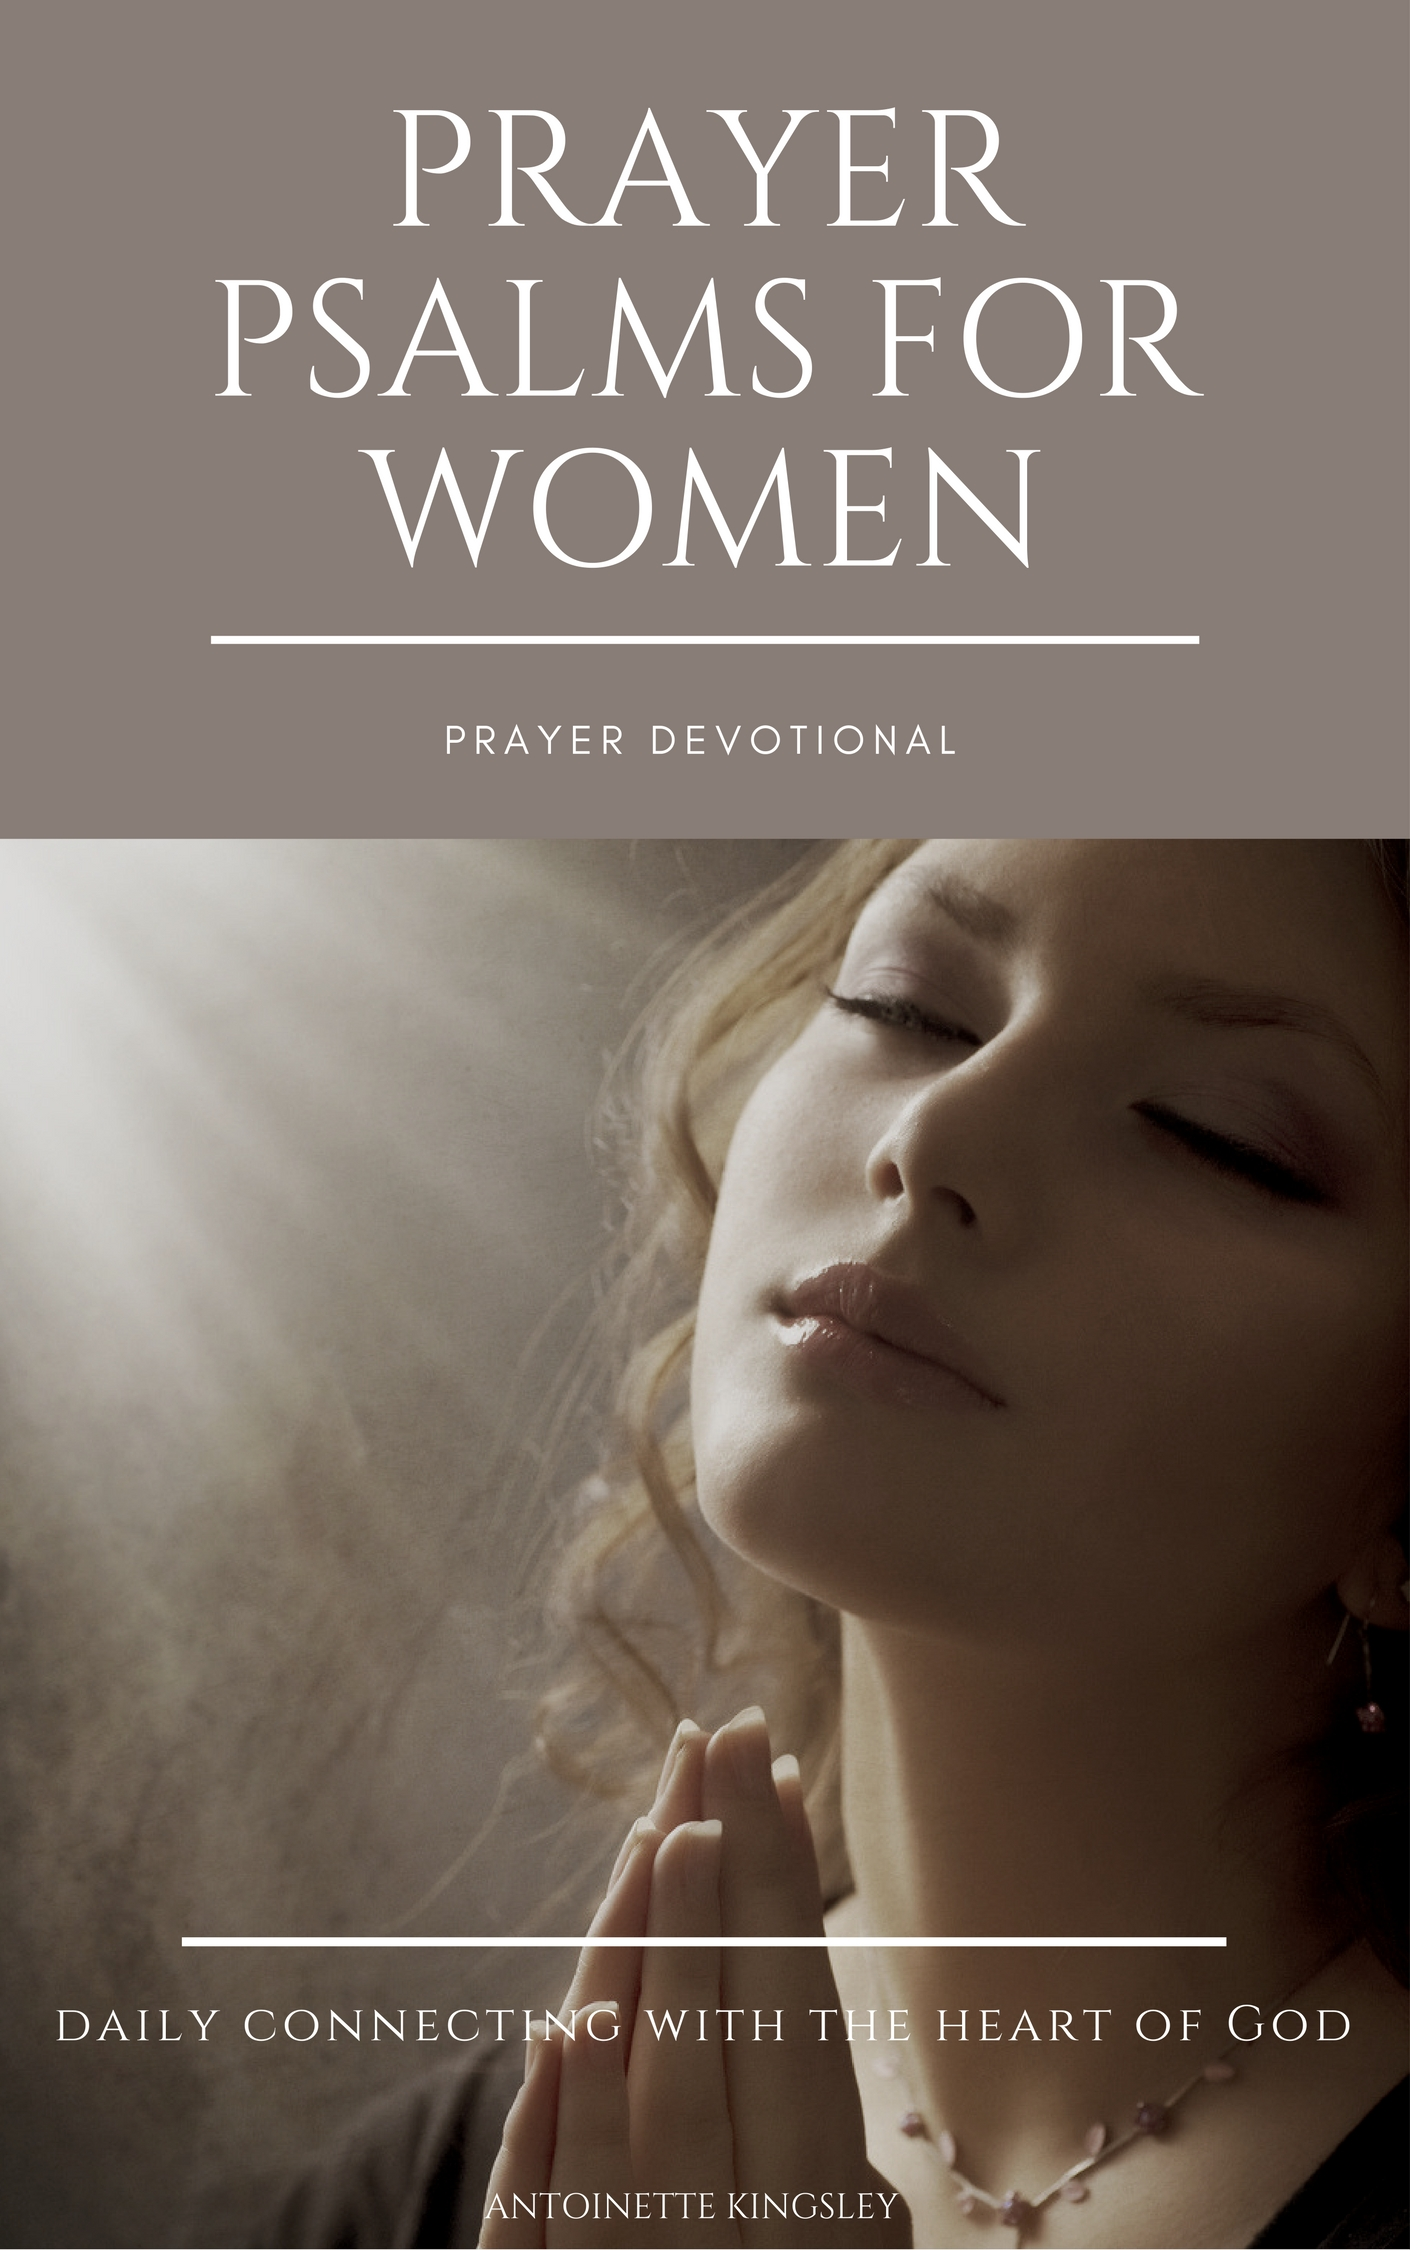 prayer psalms for women